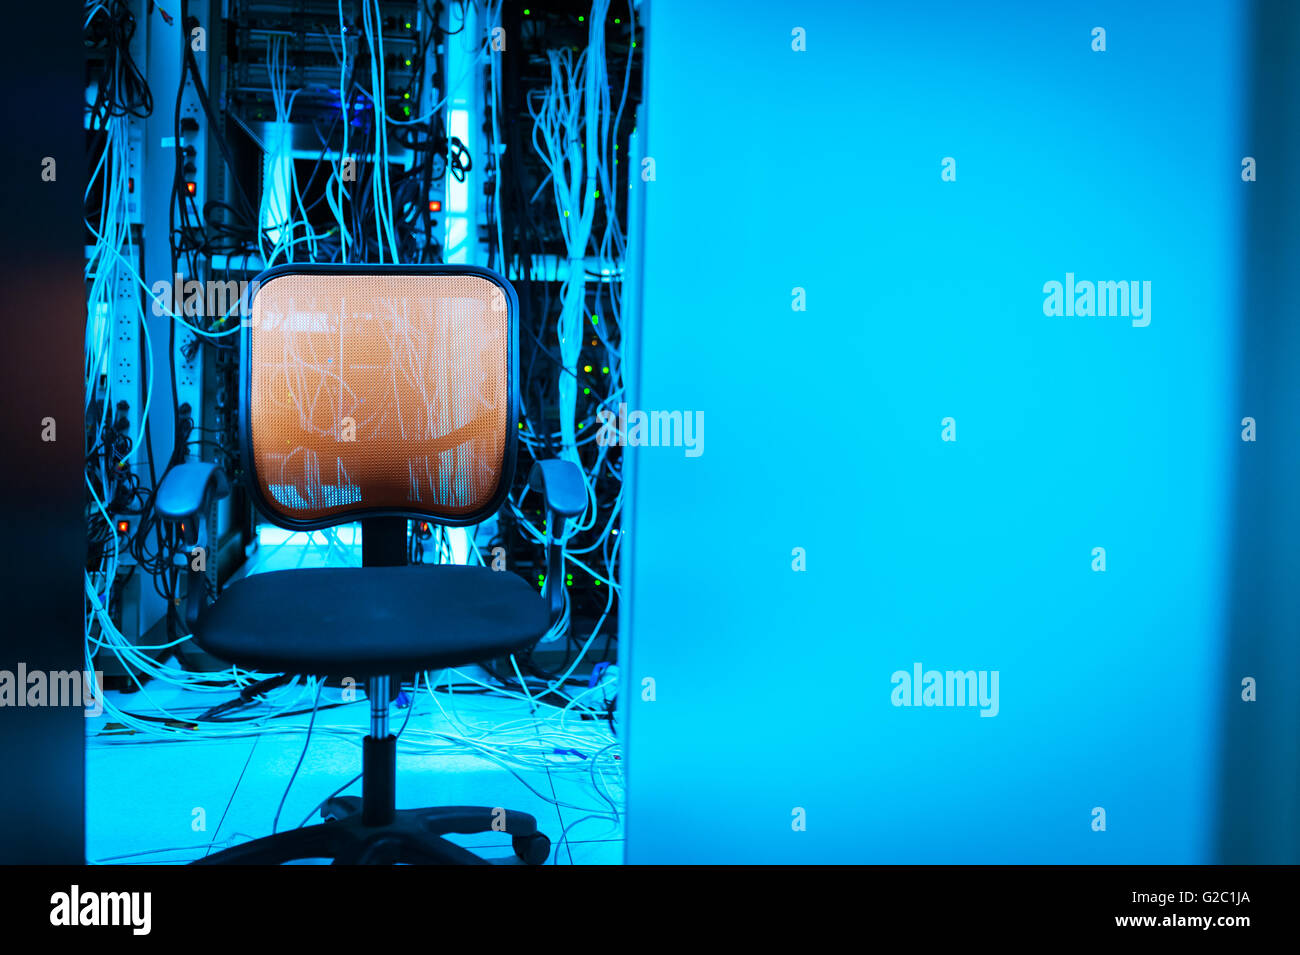 An Chair in the server room . - Stock Image